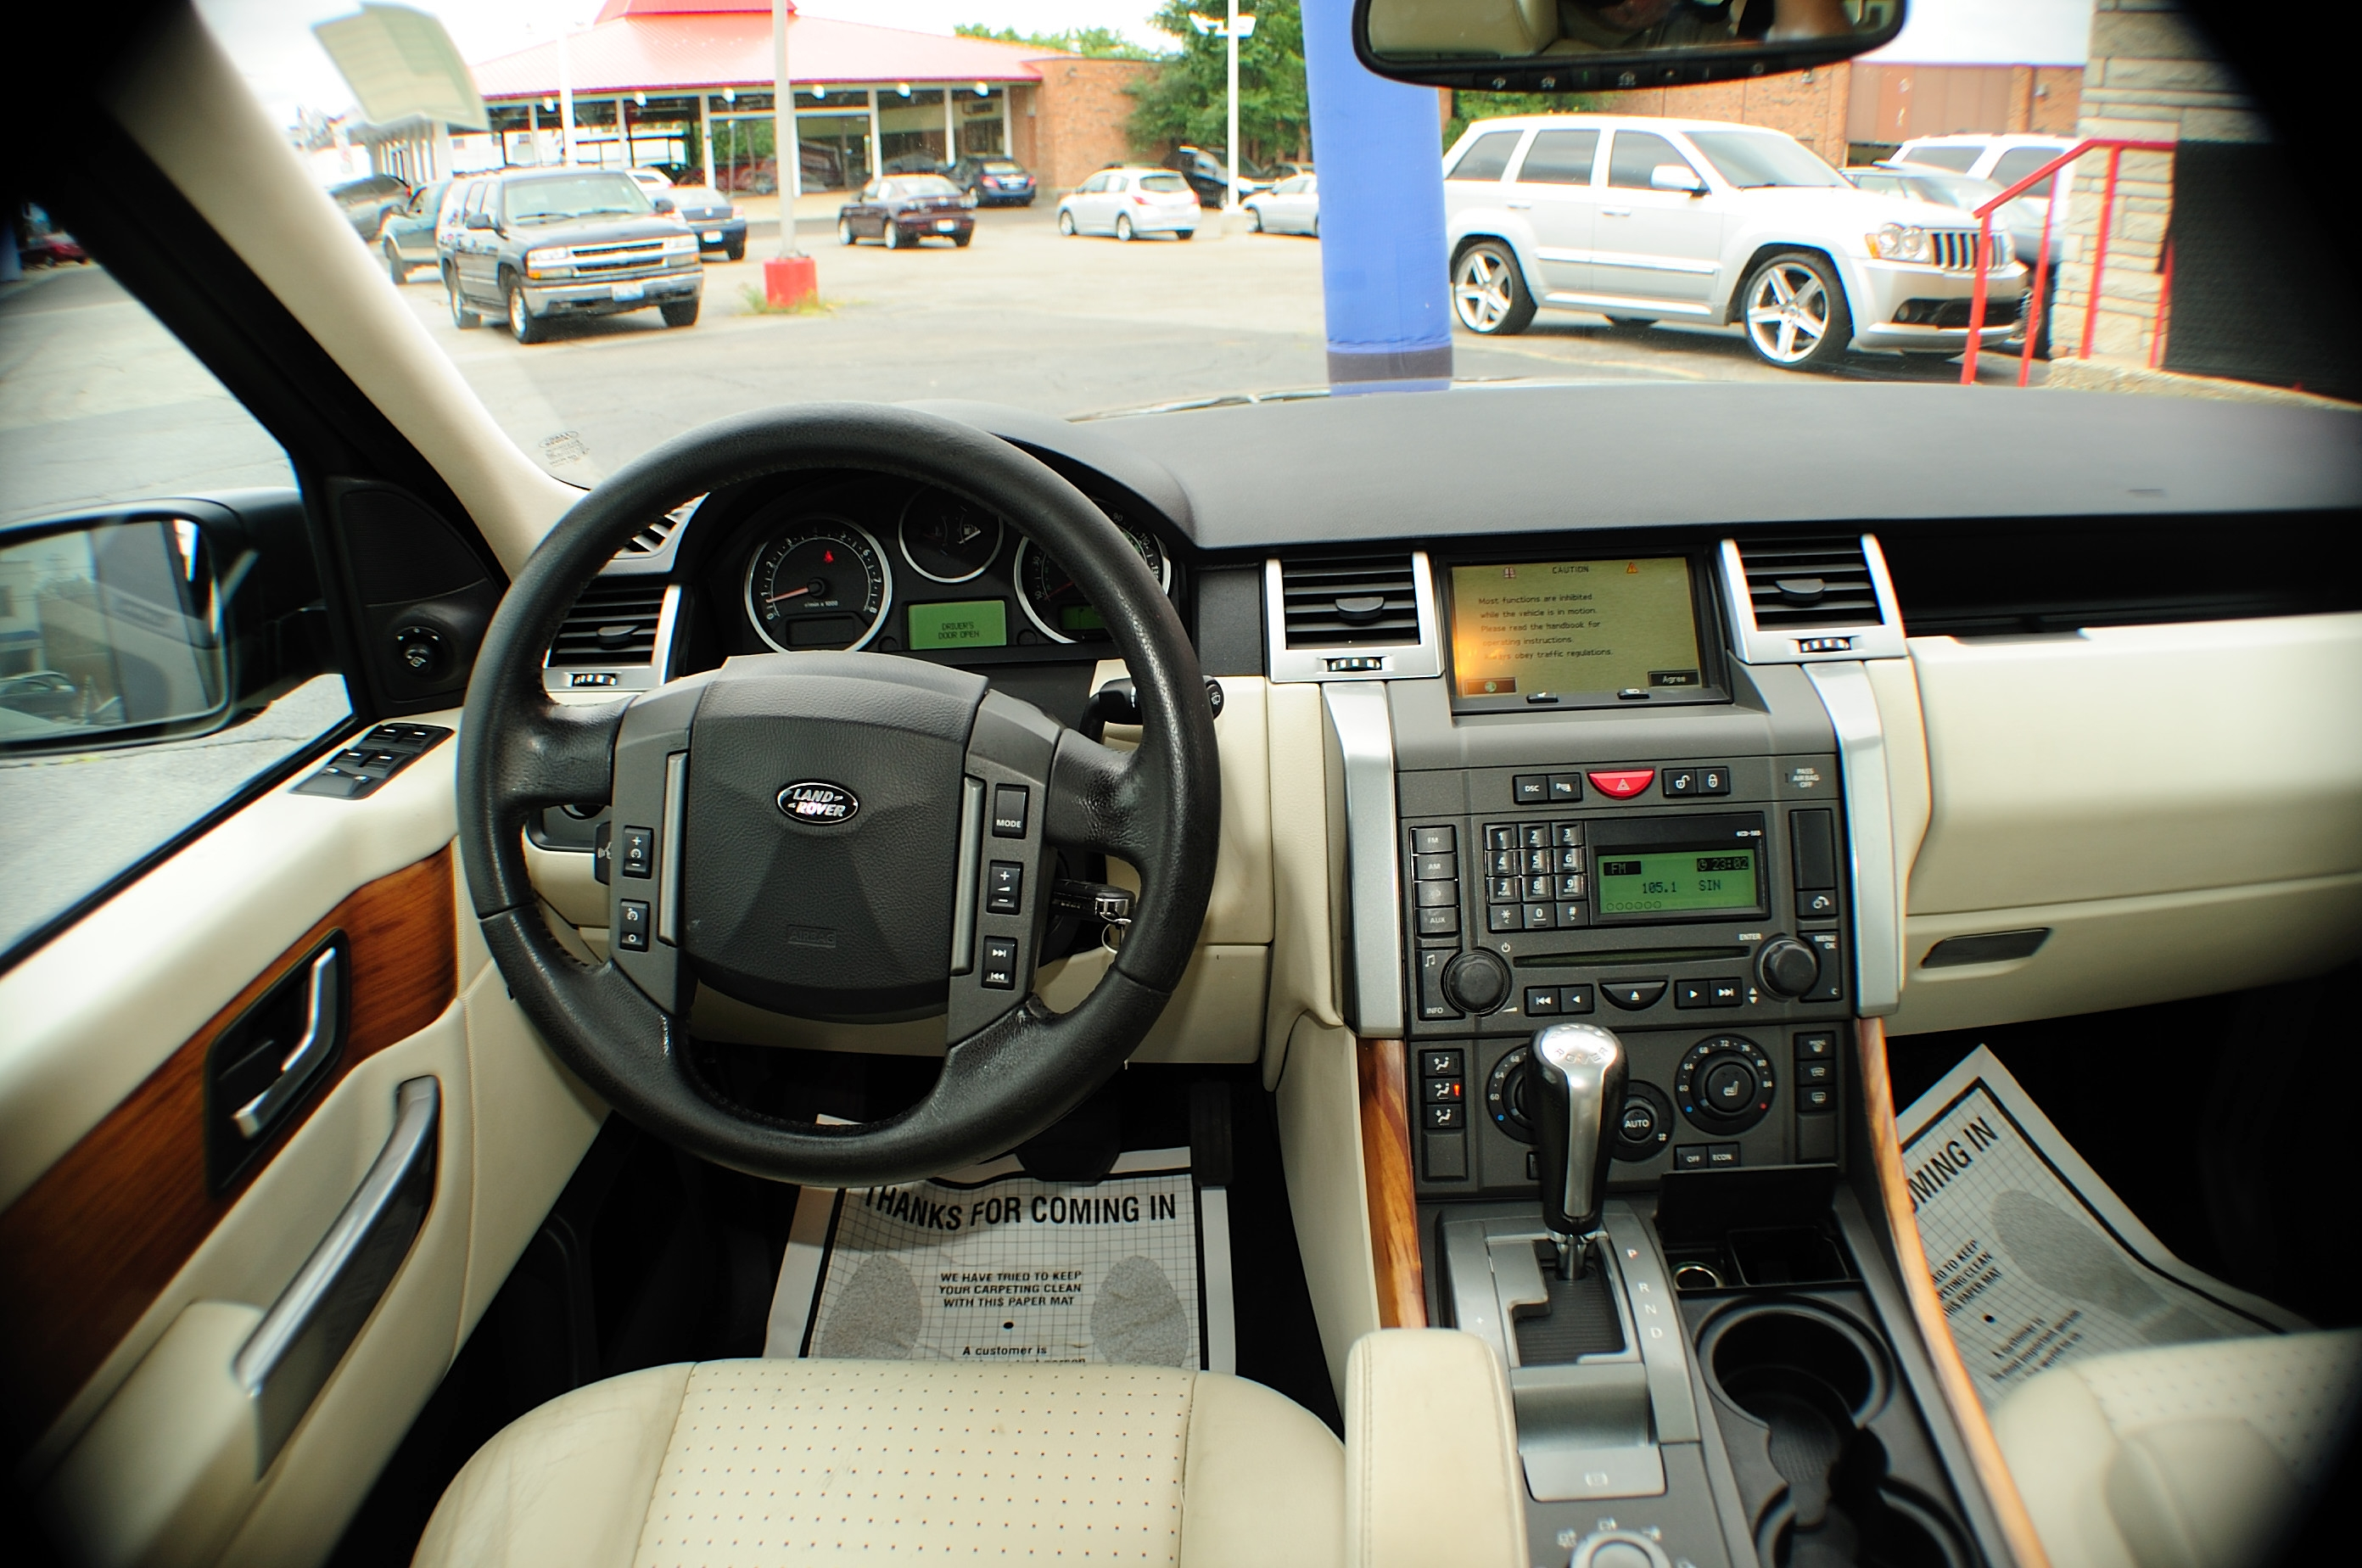 2006 Land Rover Range Rover Black used Sport SUV sale Pleasant Prairie Chicago